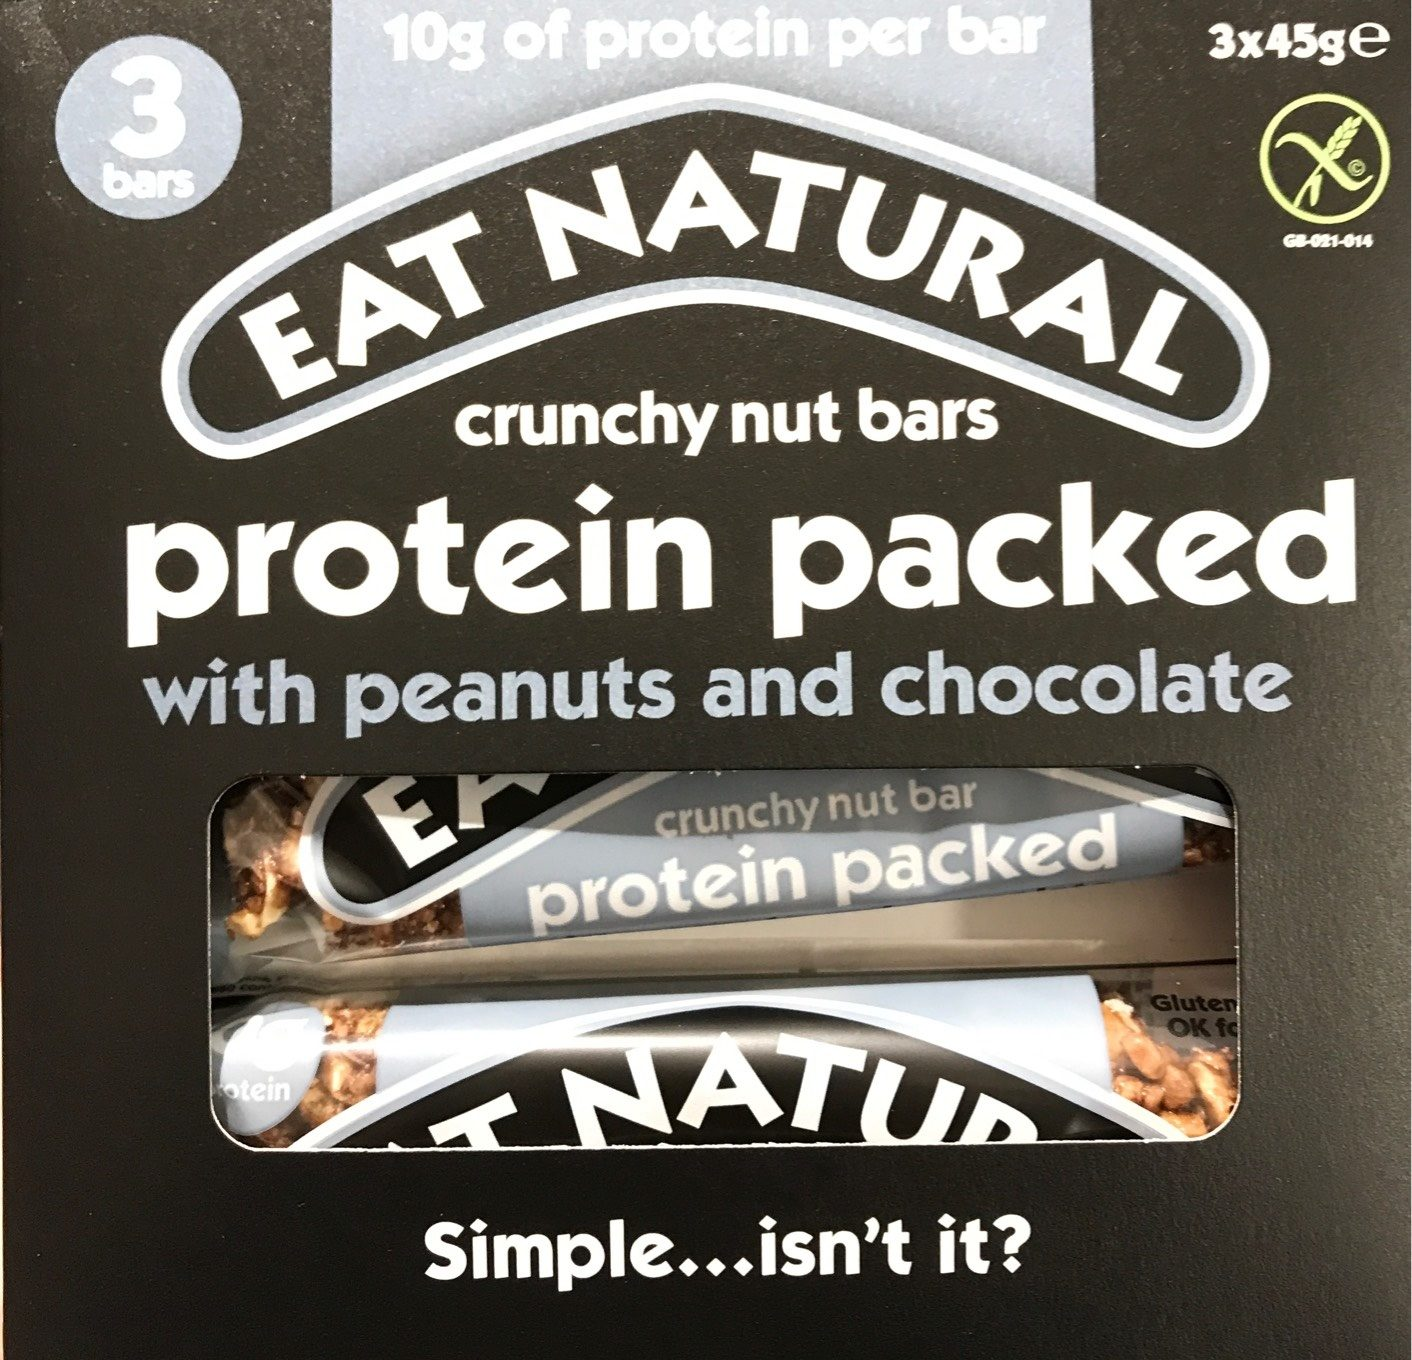 Crunchy nut bar protein packed - Product